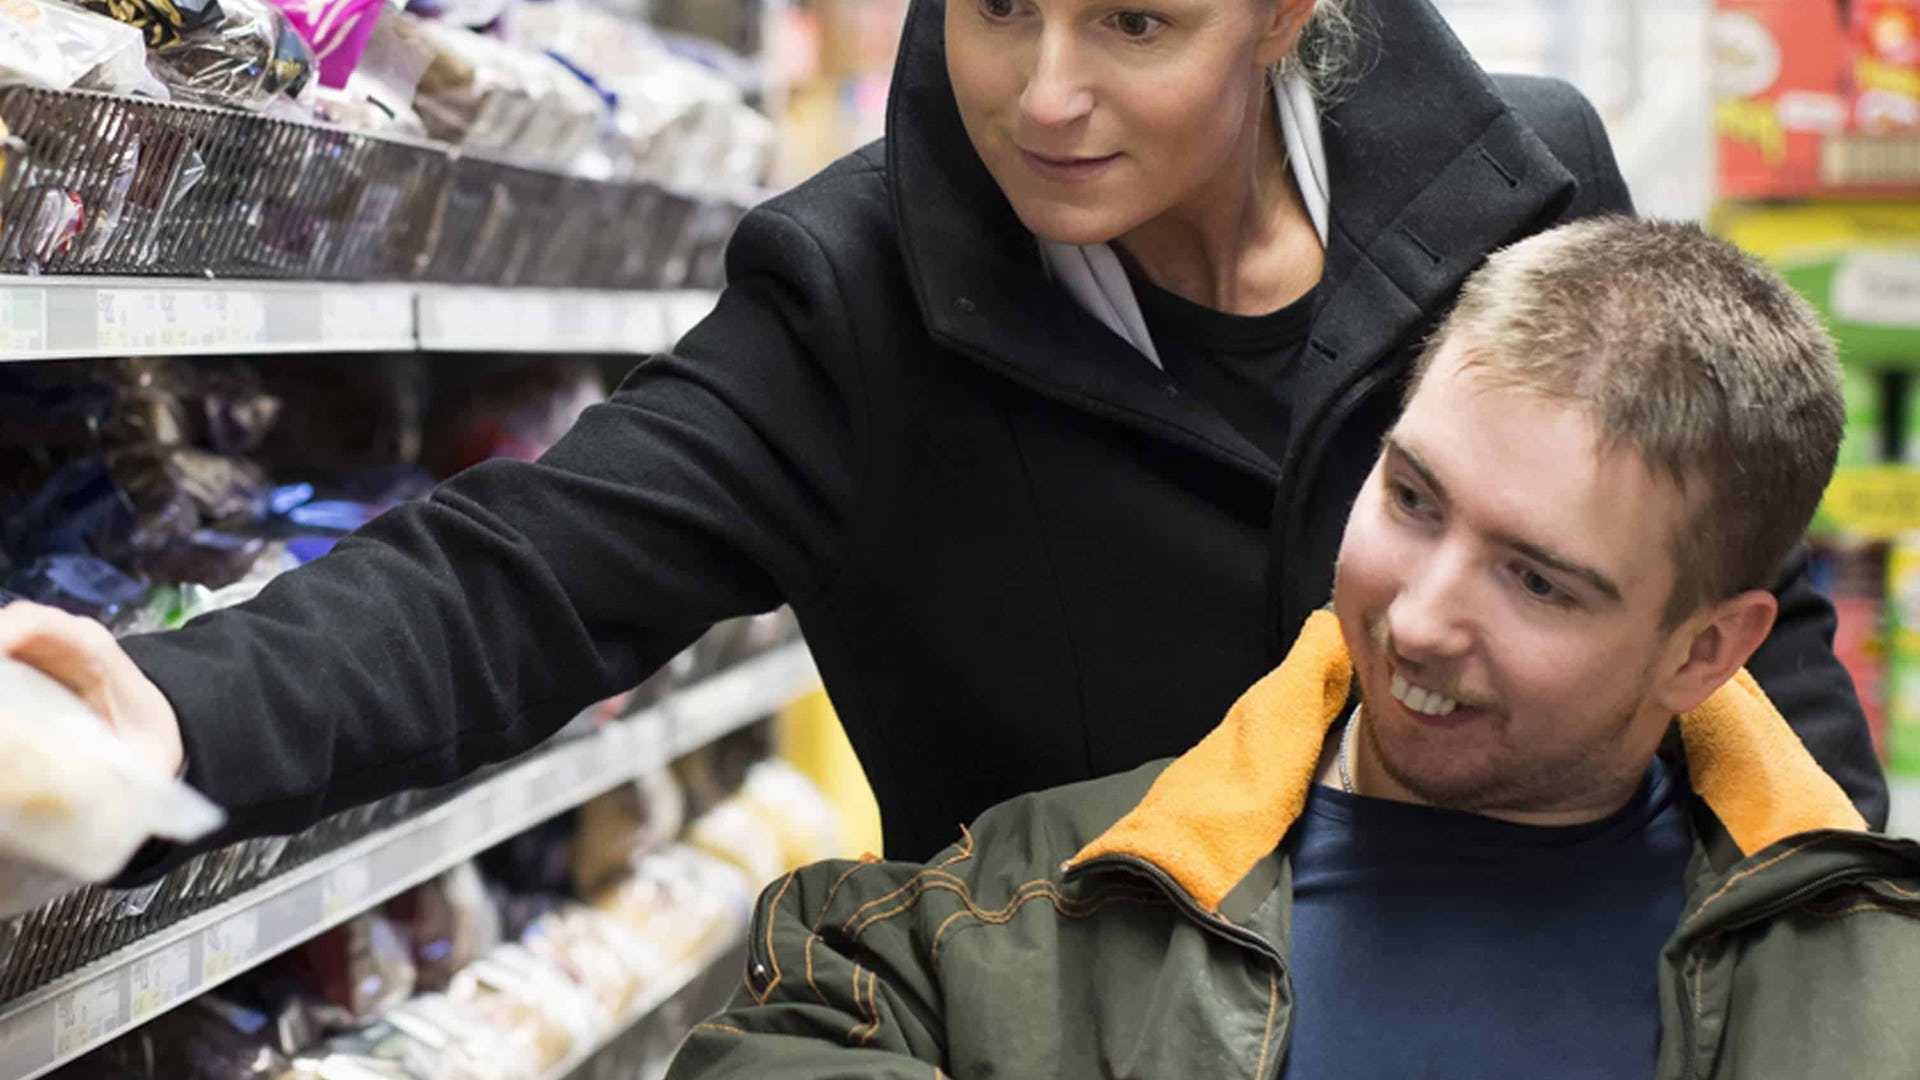 Carer supporting a young male client shopping